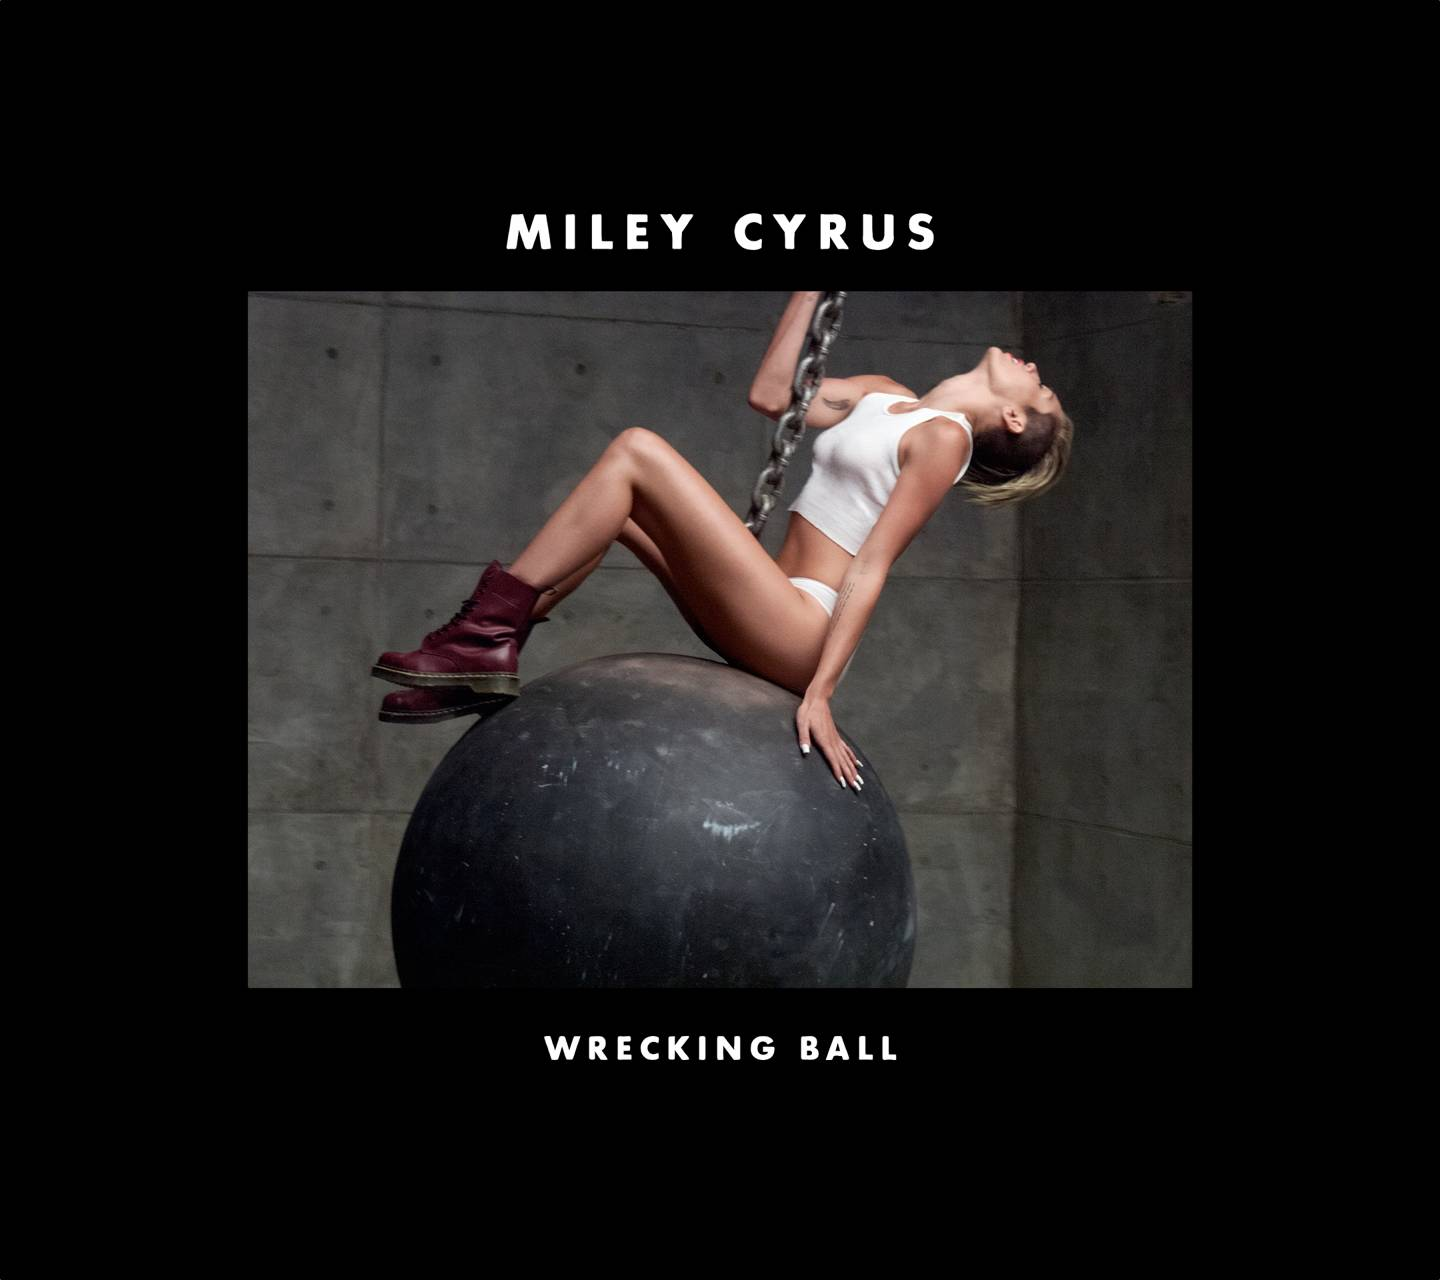 Wrecking Ball Miley